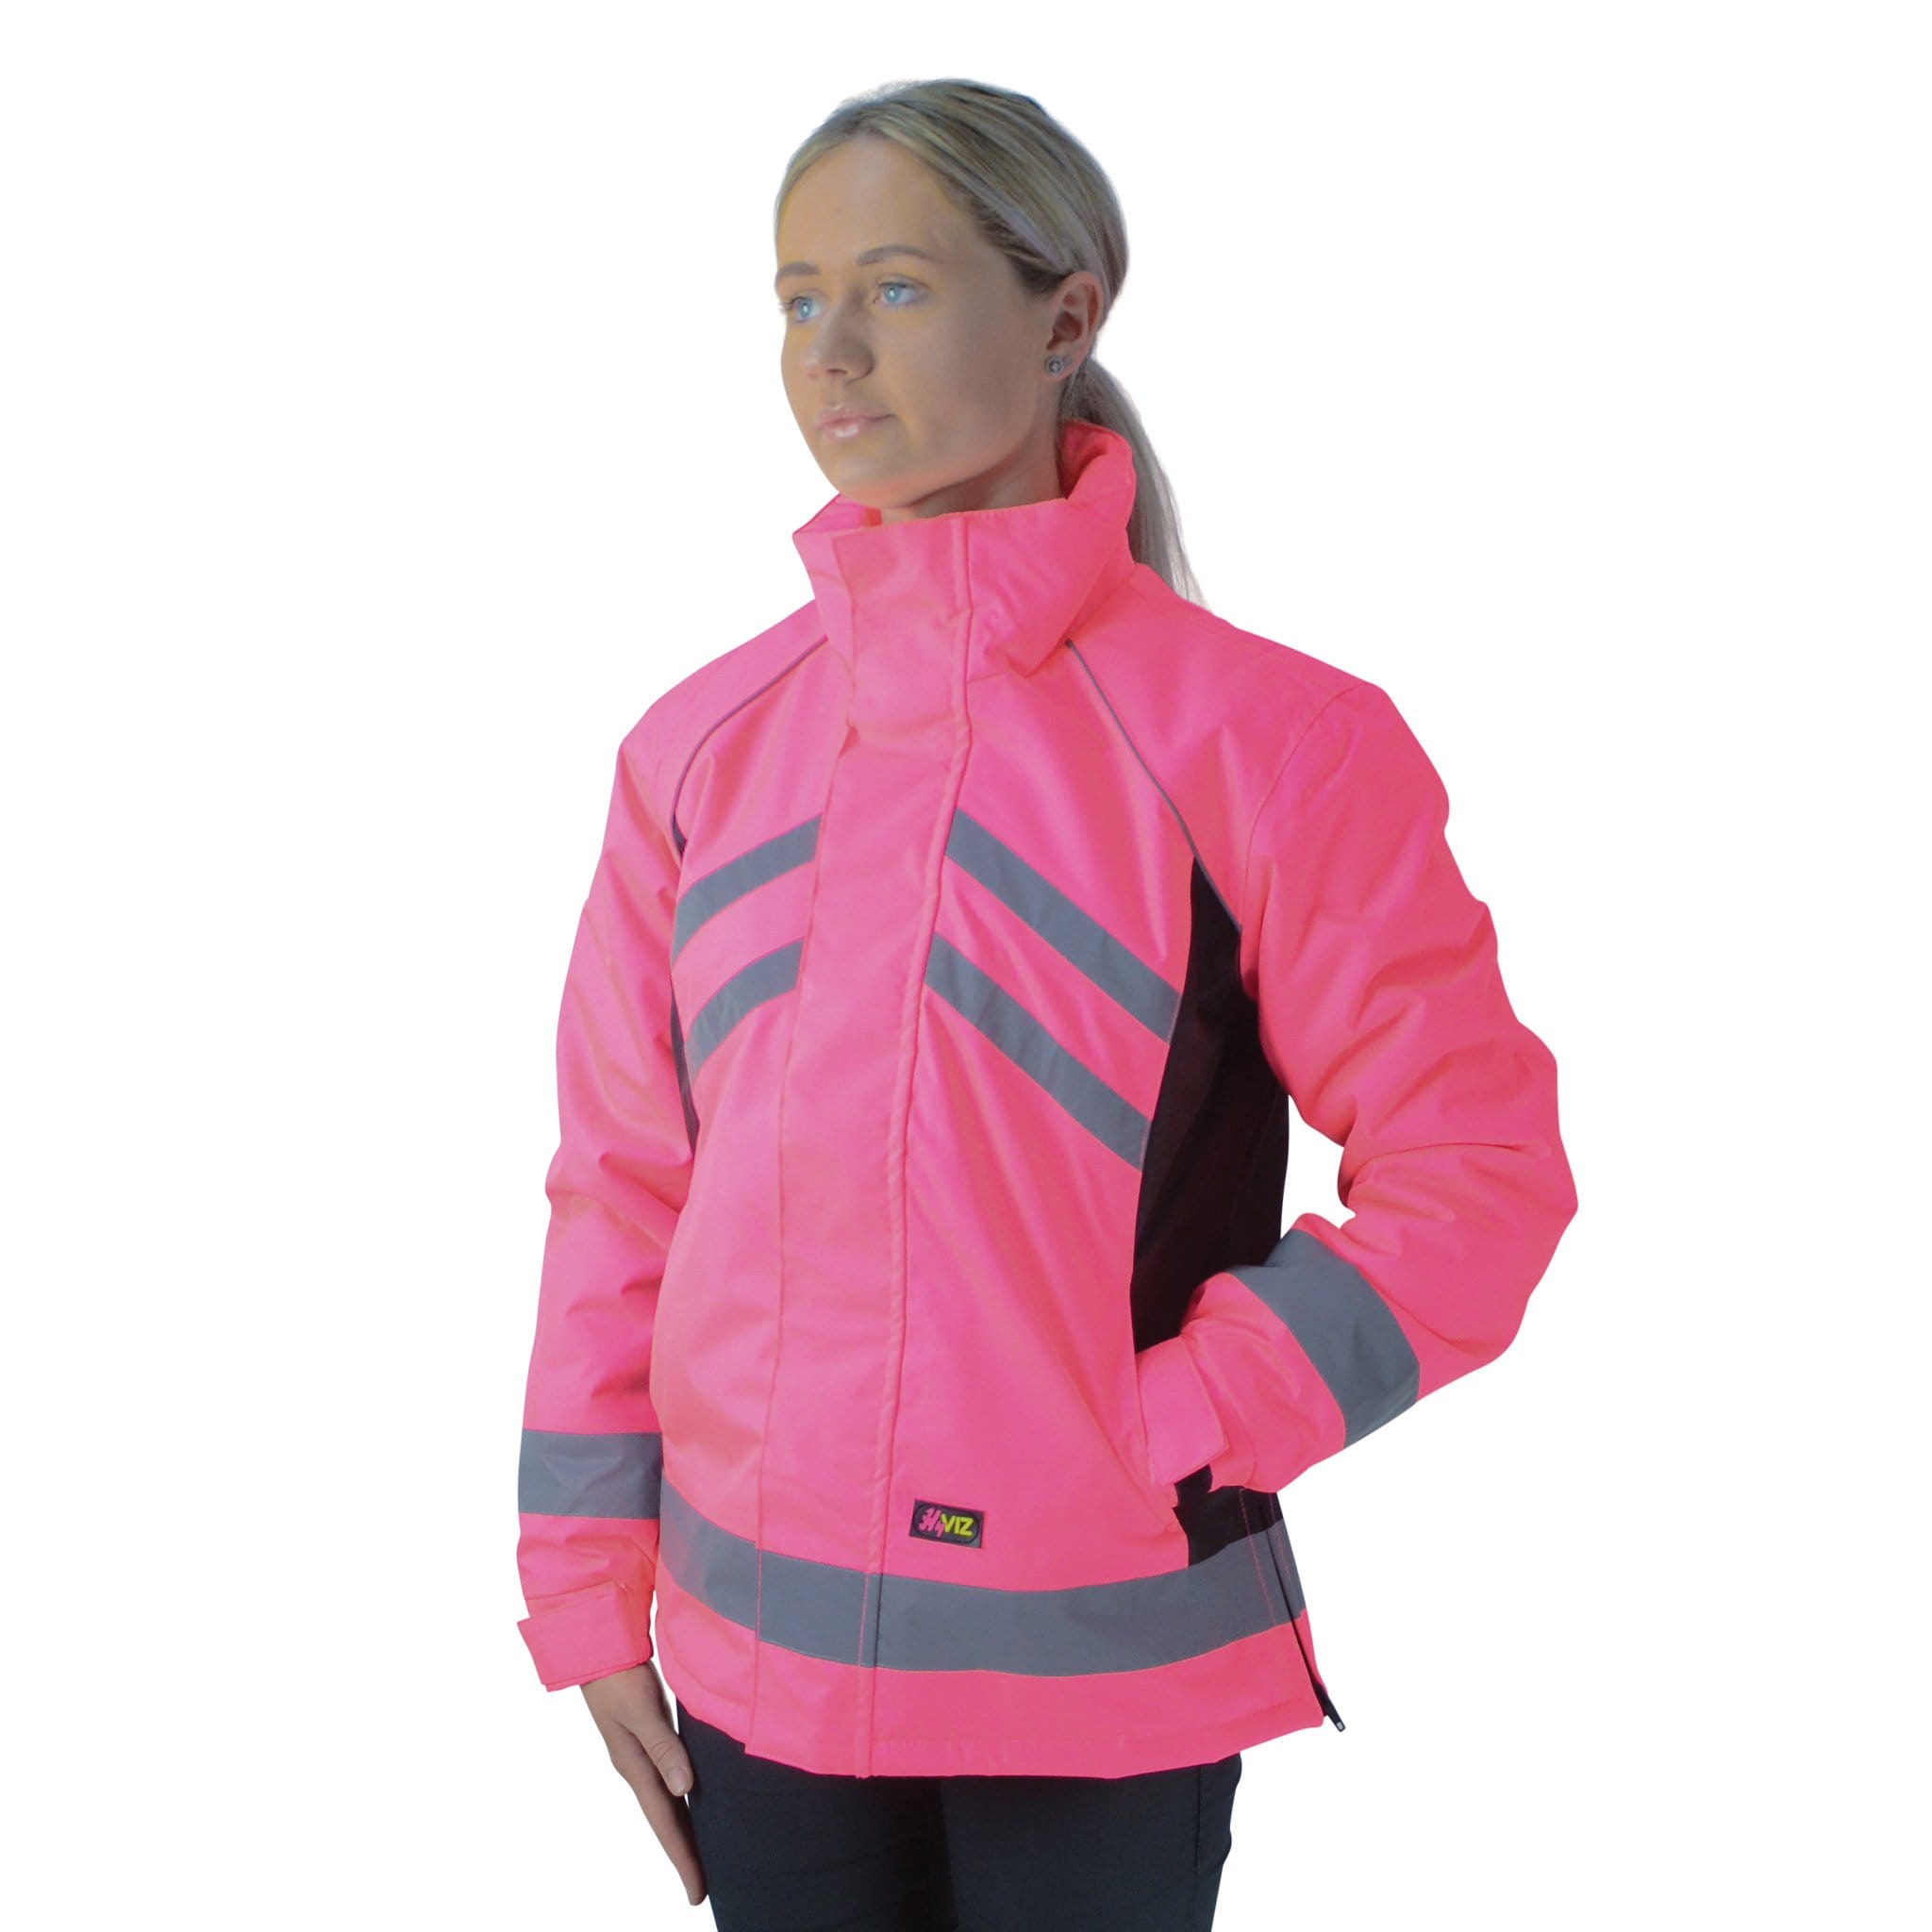 Hy Equestrian Hi Viz Waterproof Riding Jacket 4818 Pink Front View